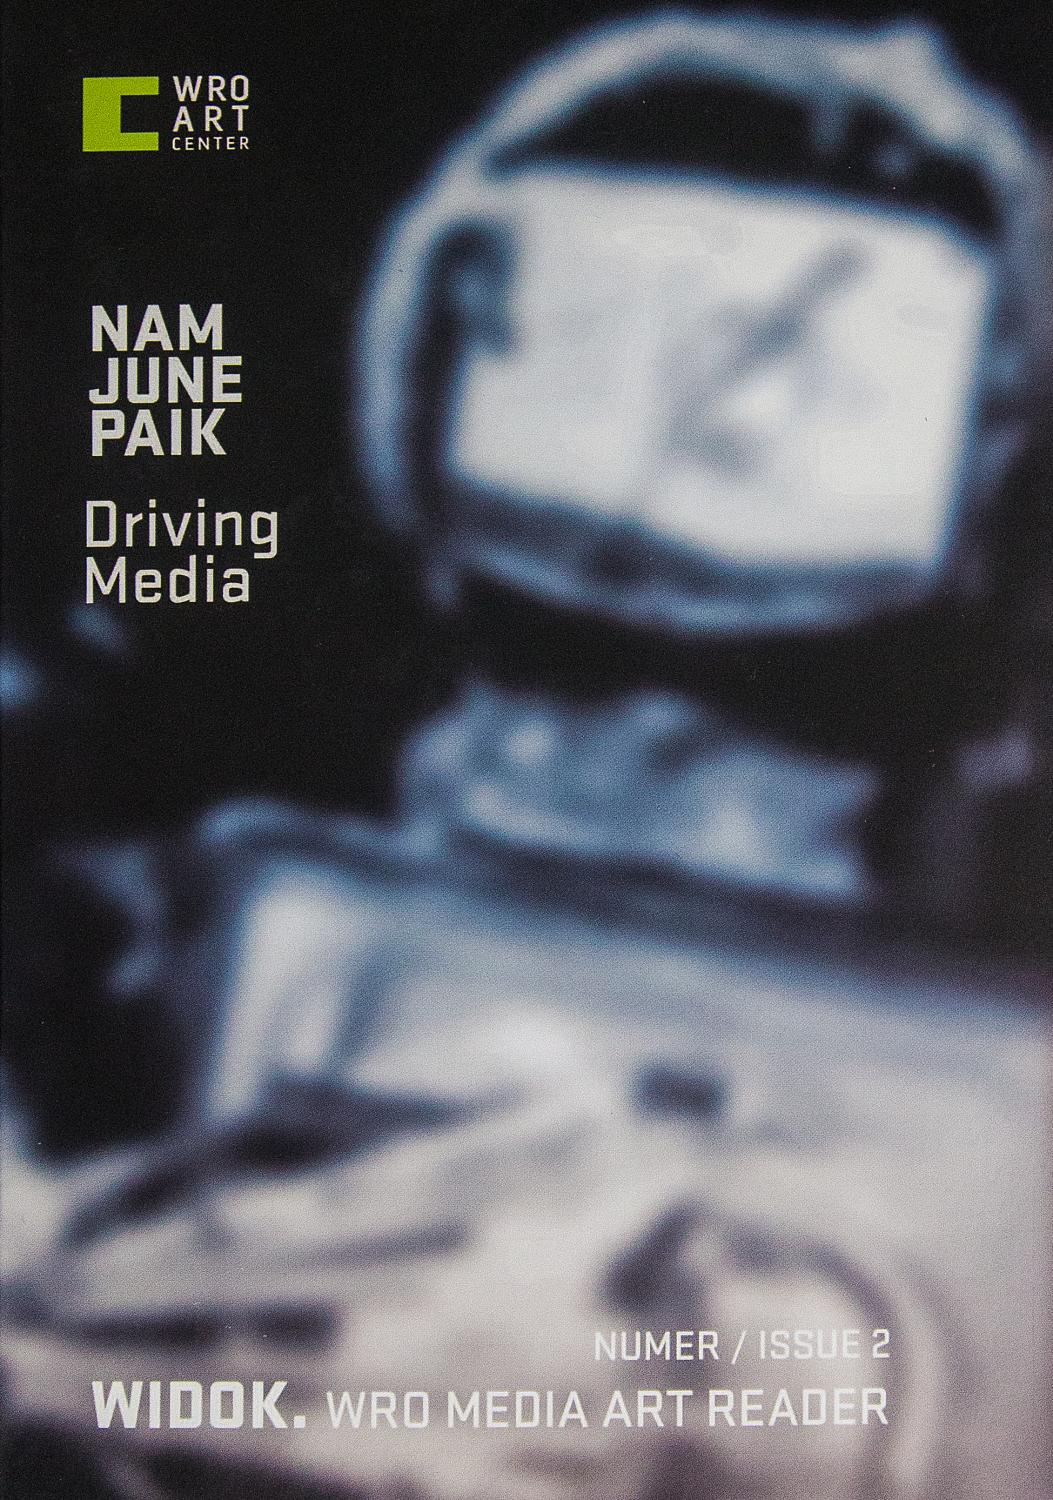 Widok Wro Media Art Reader Numerissue2 Nam June Paik